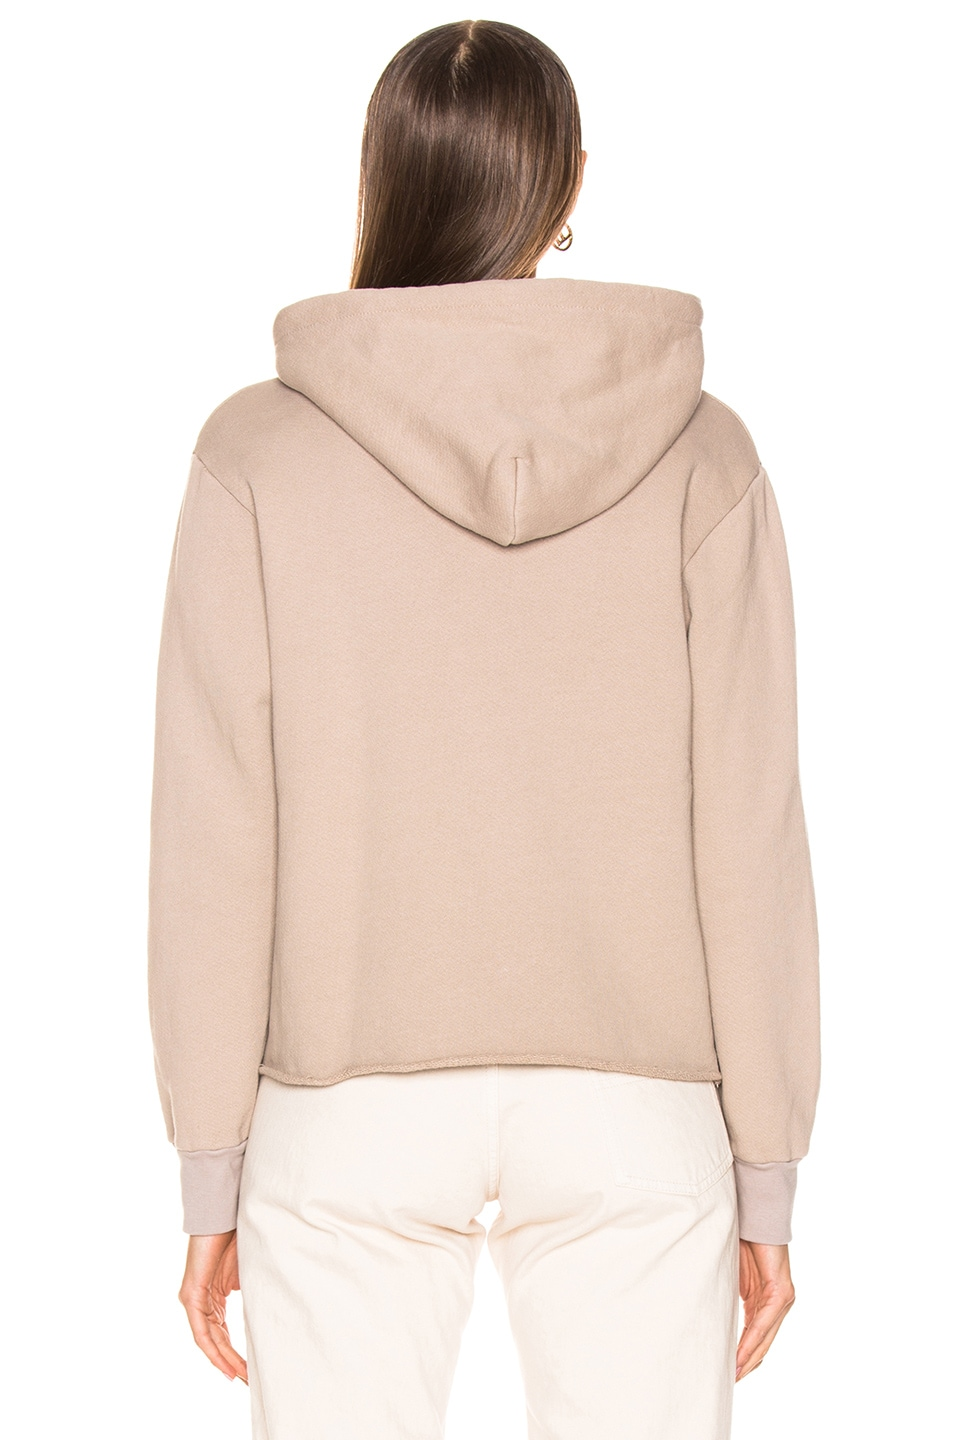 55ea26146 Image 3 of COTTON CITIZEN Brooklyn Hoodie in Cappuccino